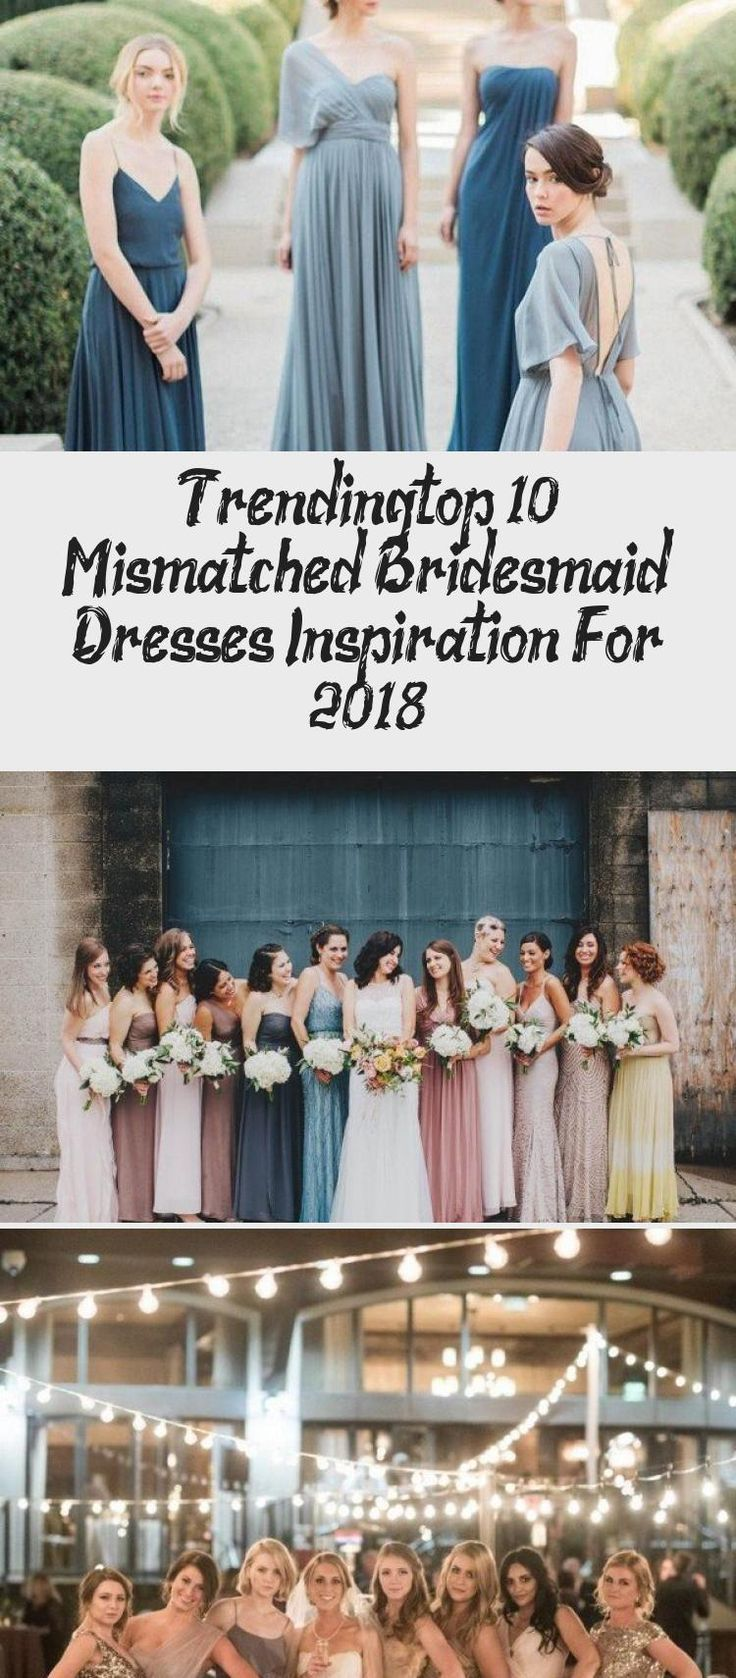 I like doing different color dresses and playing with the greys, blues, and purples. I think the different color greys is really pretty. #BridesmaidDressesCountry #ModestBridesmaidDresses #BridesmaidDressesLong #OffTheShoulderBridesmaidDresses #OrangeBridesmaidDresses